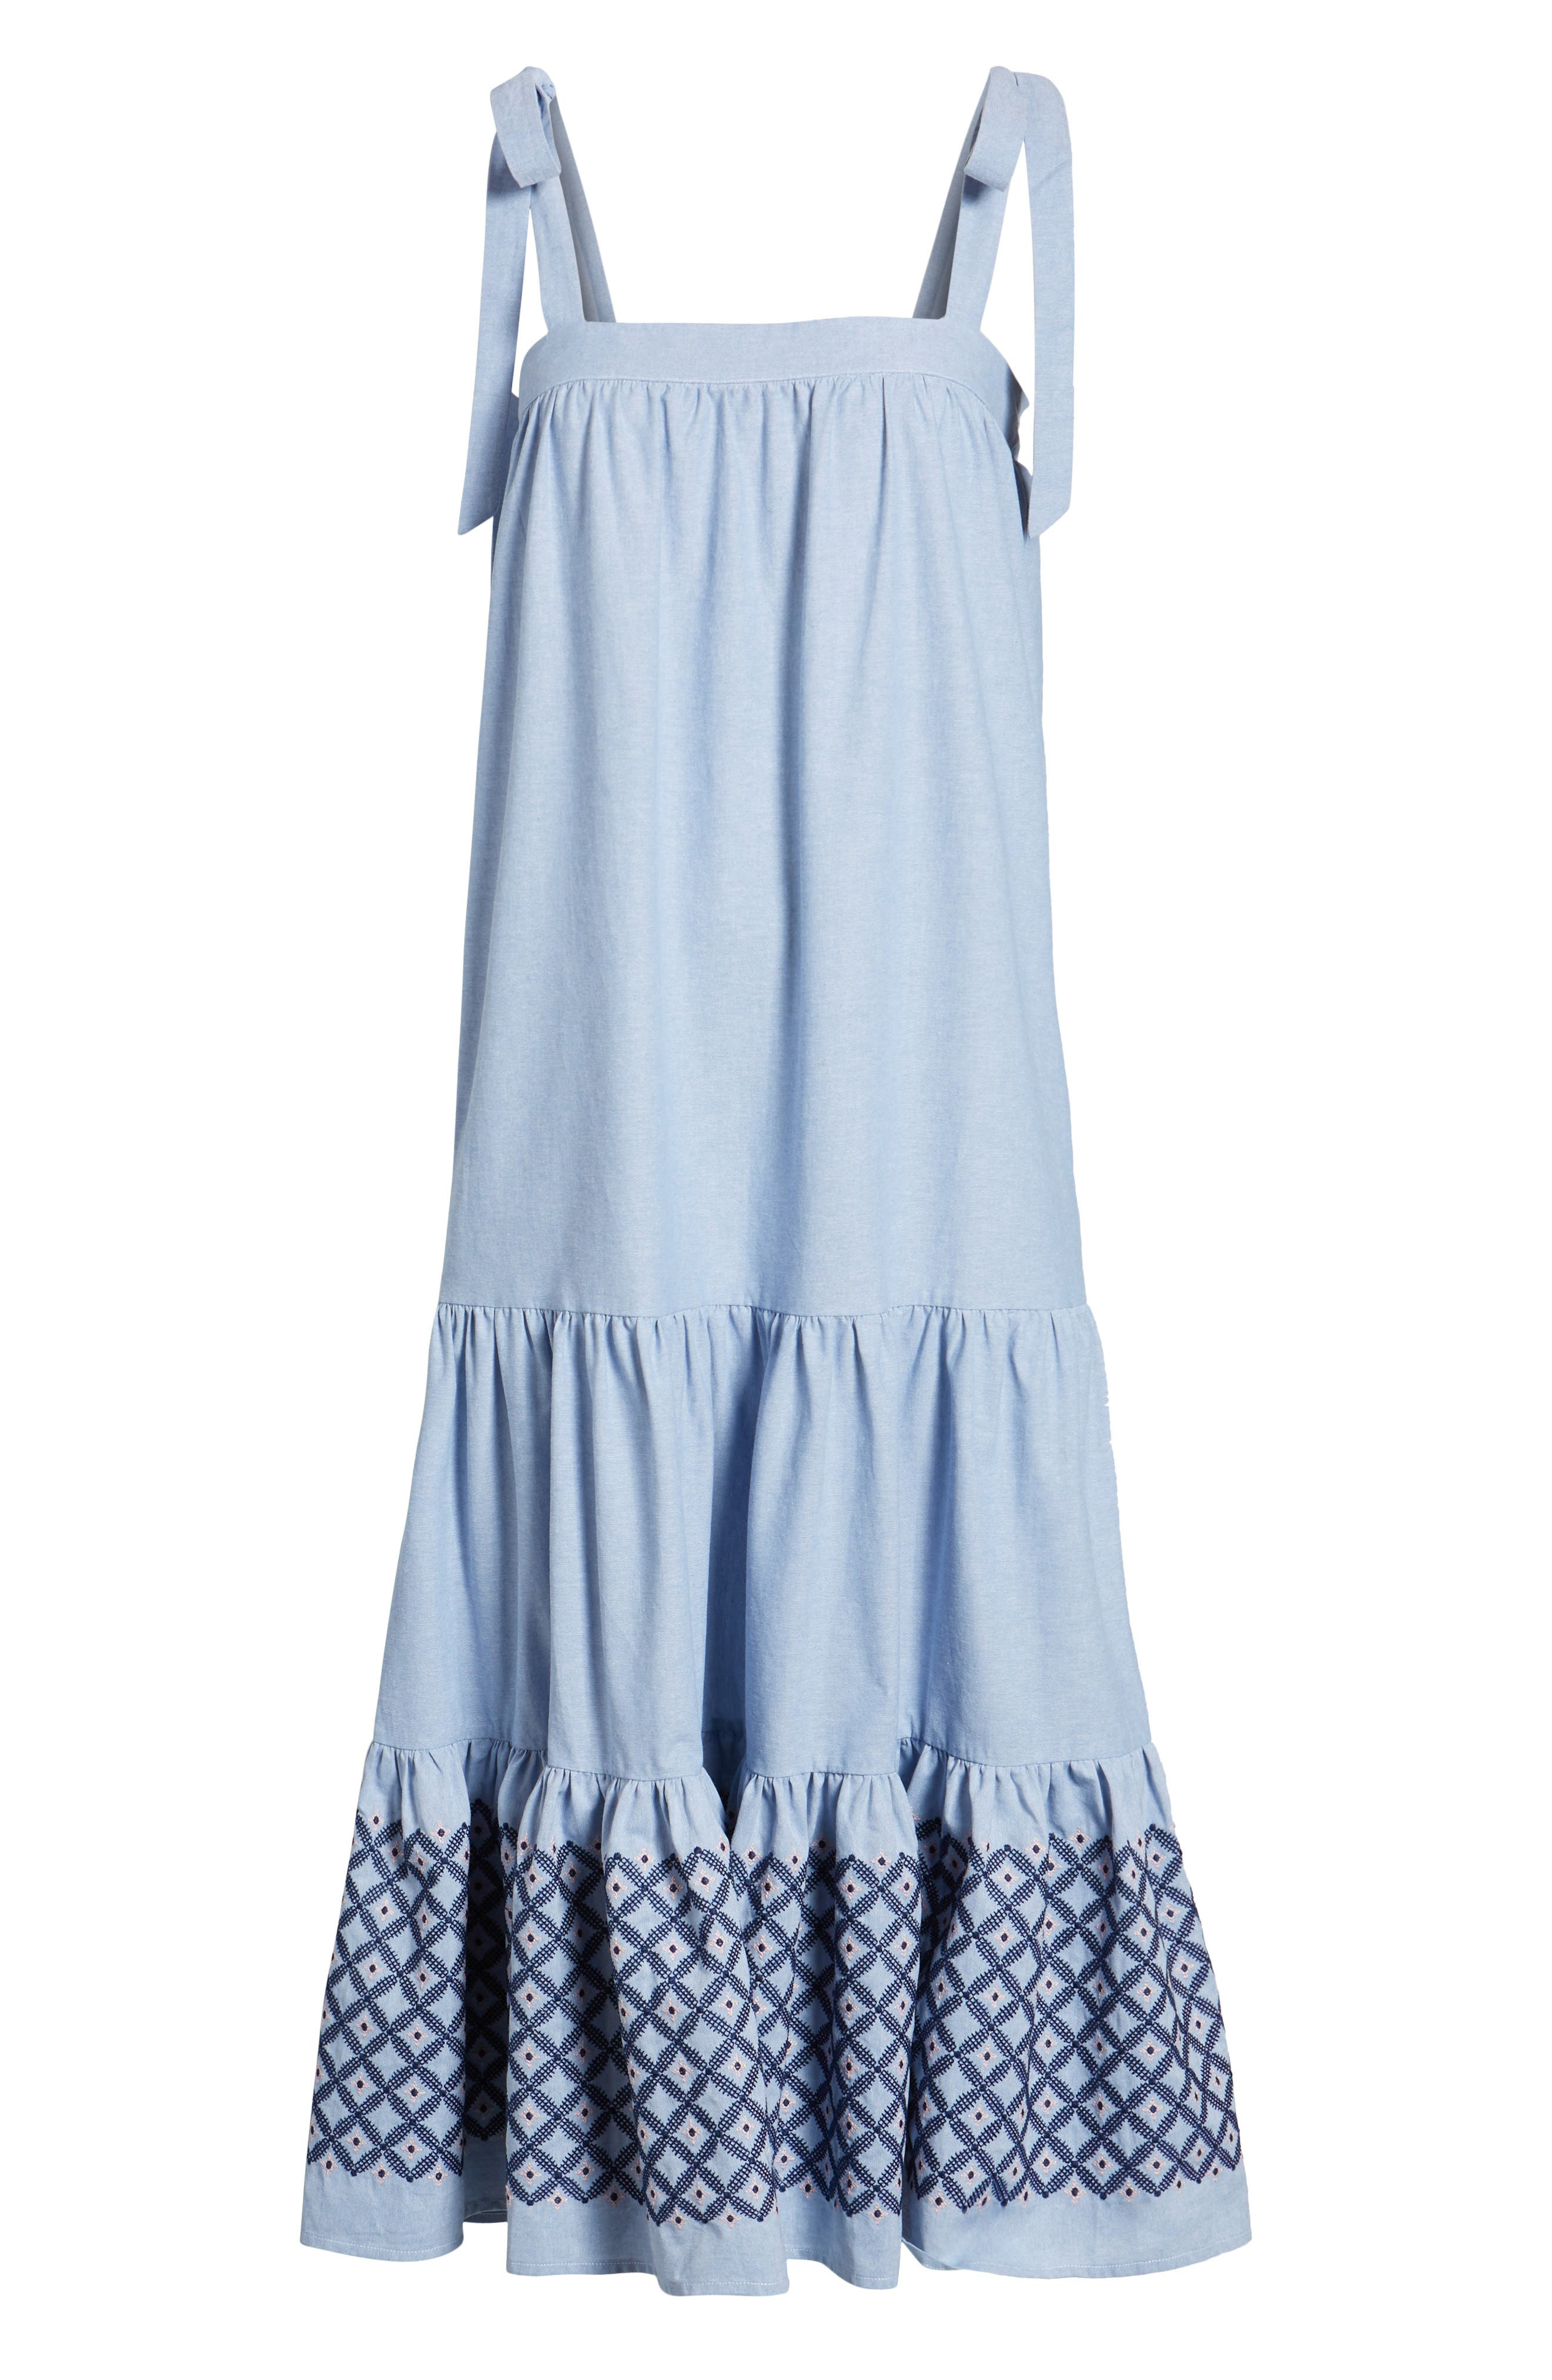 Lucy Dress,                             Alternate thumbnail 7, color,                             400